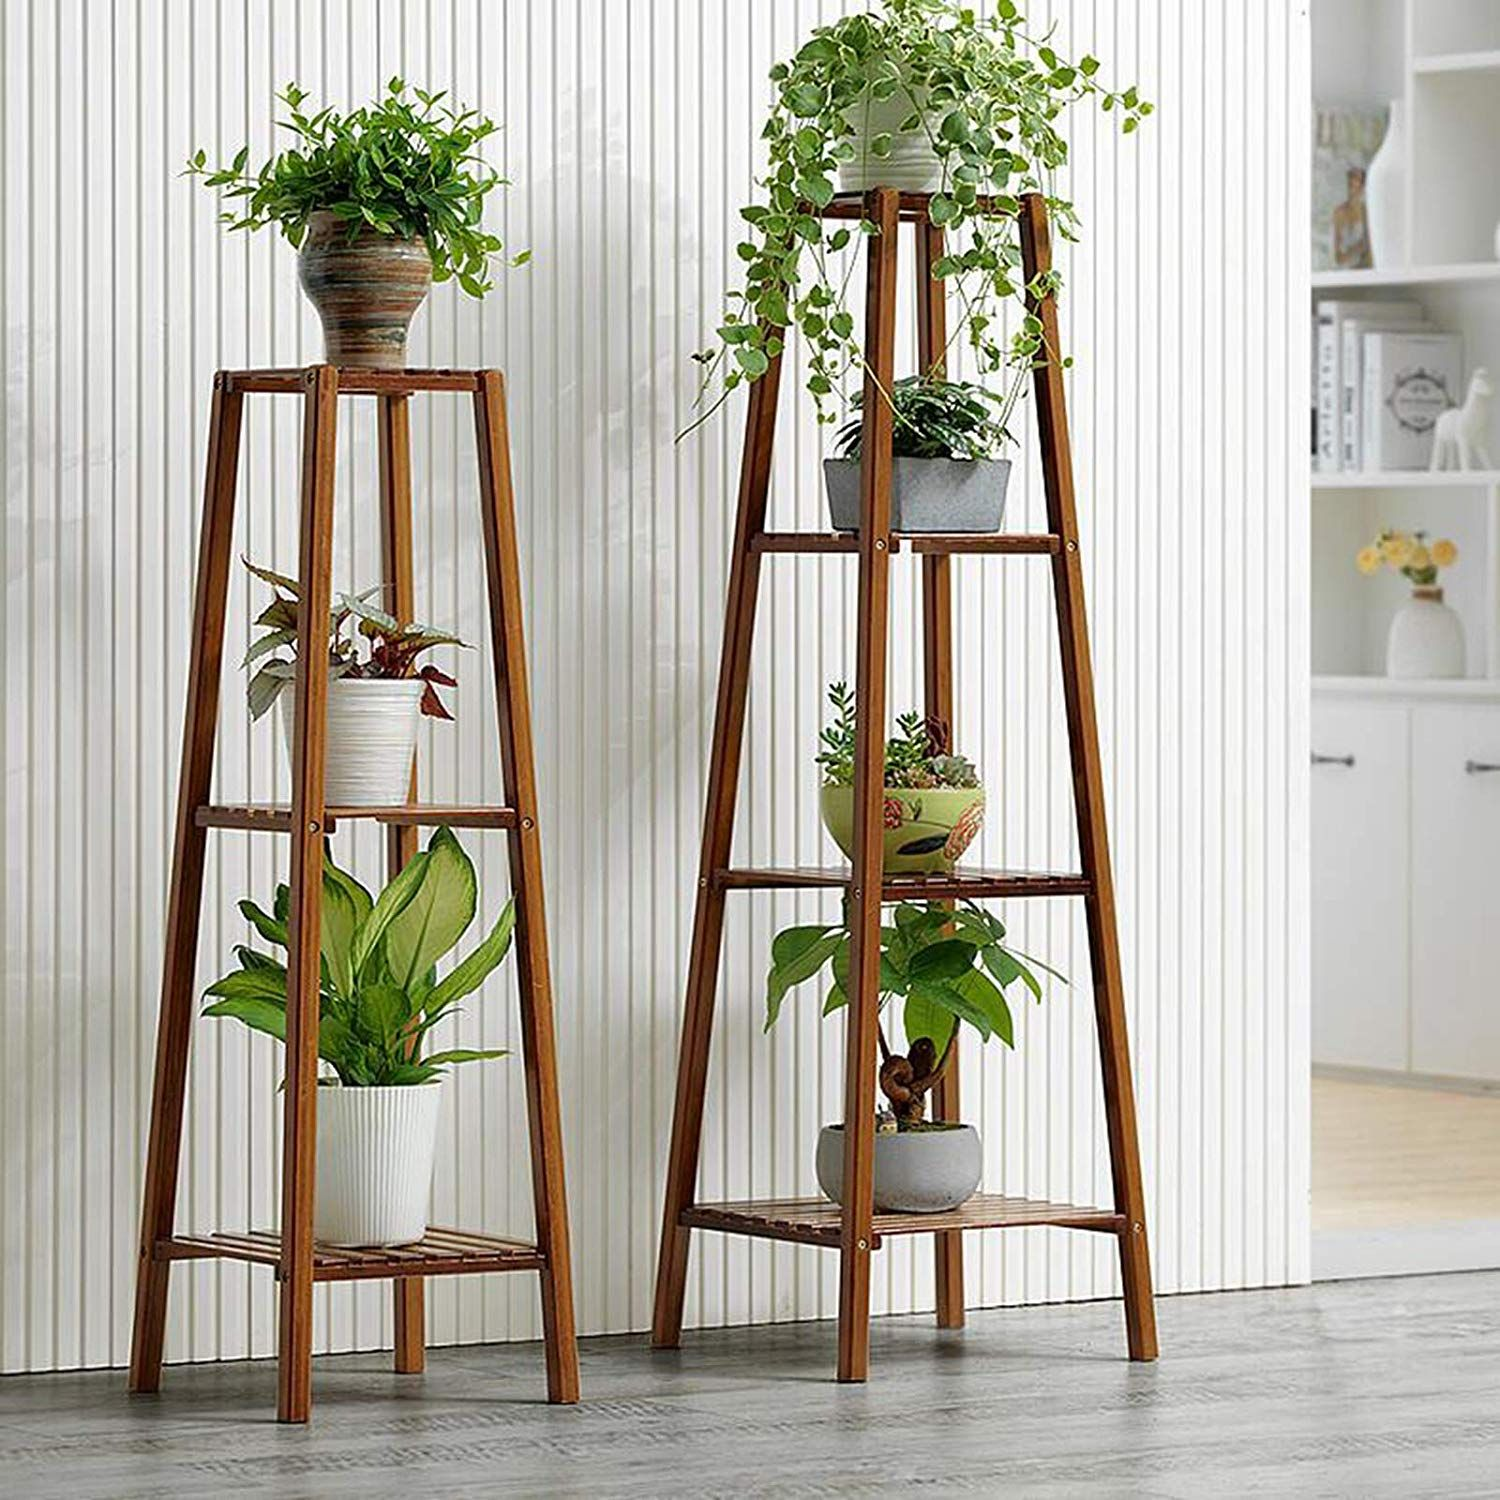 Home in 2020 House plants decor, Tall plant stands